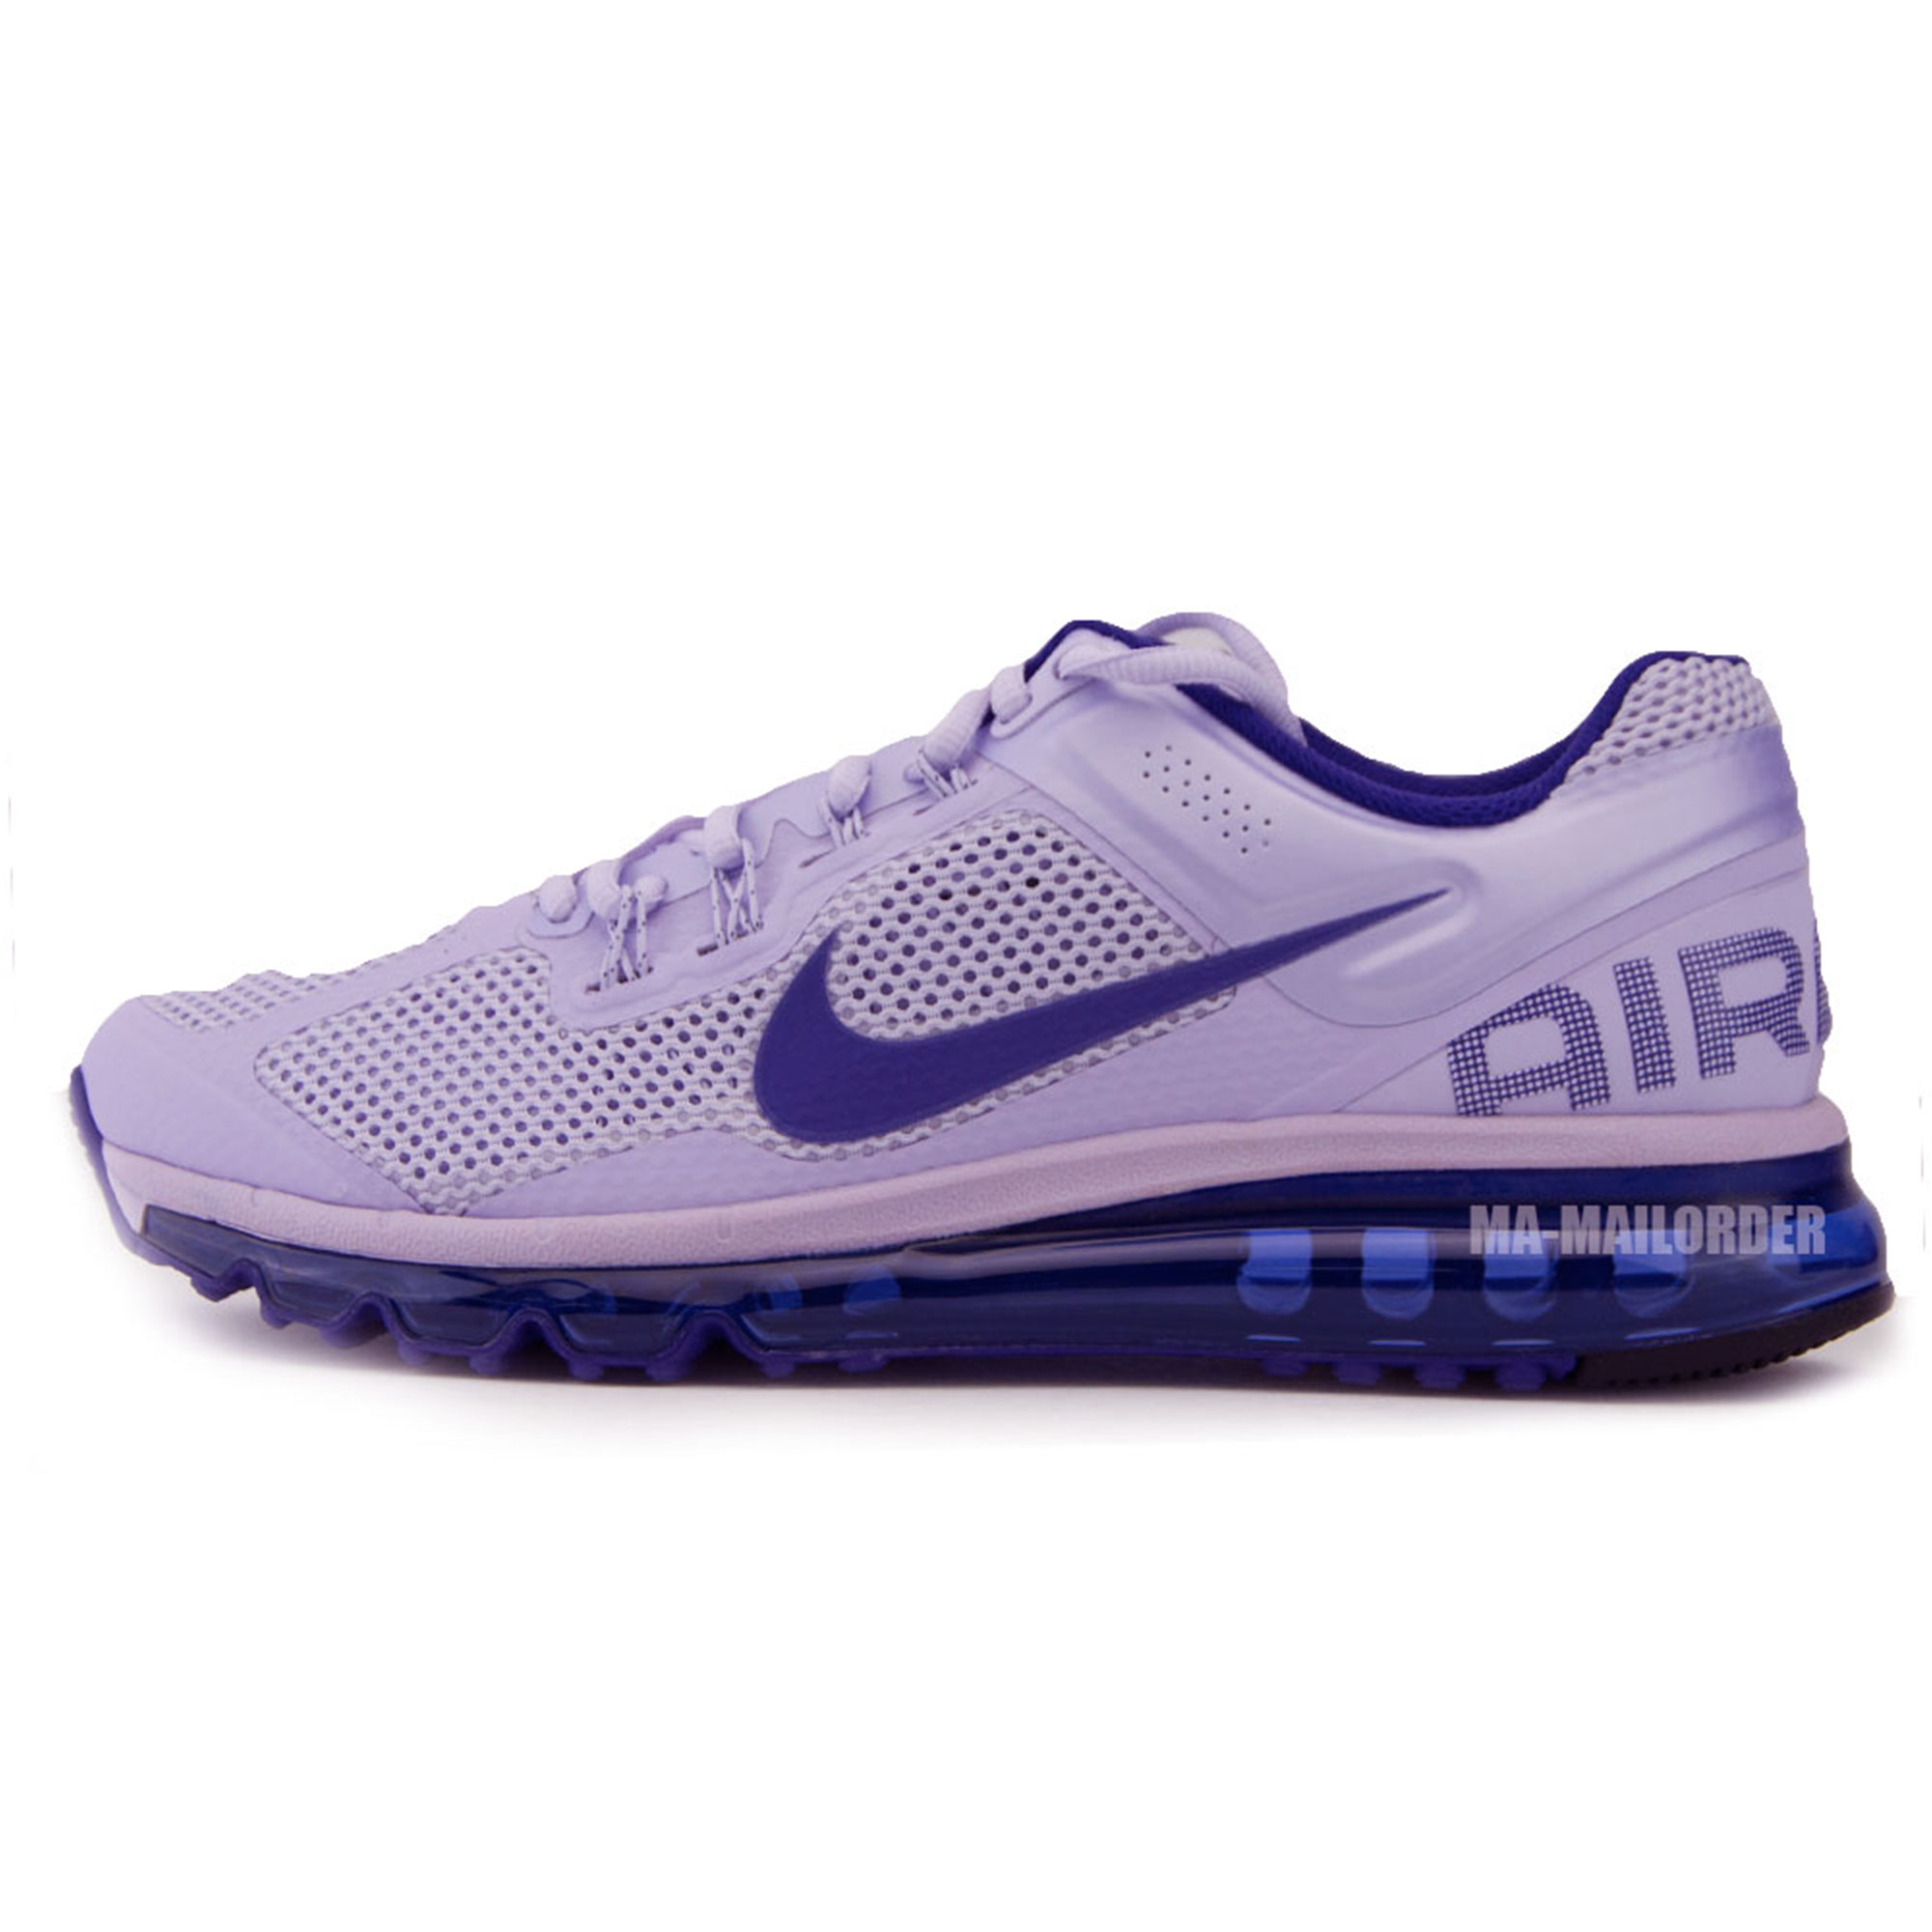 nike air max 95 no wmns 2014 max 2013 running shoes summer. Black Bedroom Furniture Sets. Home Design Ideas